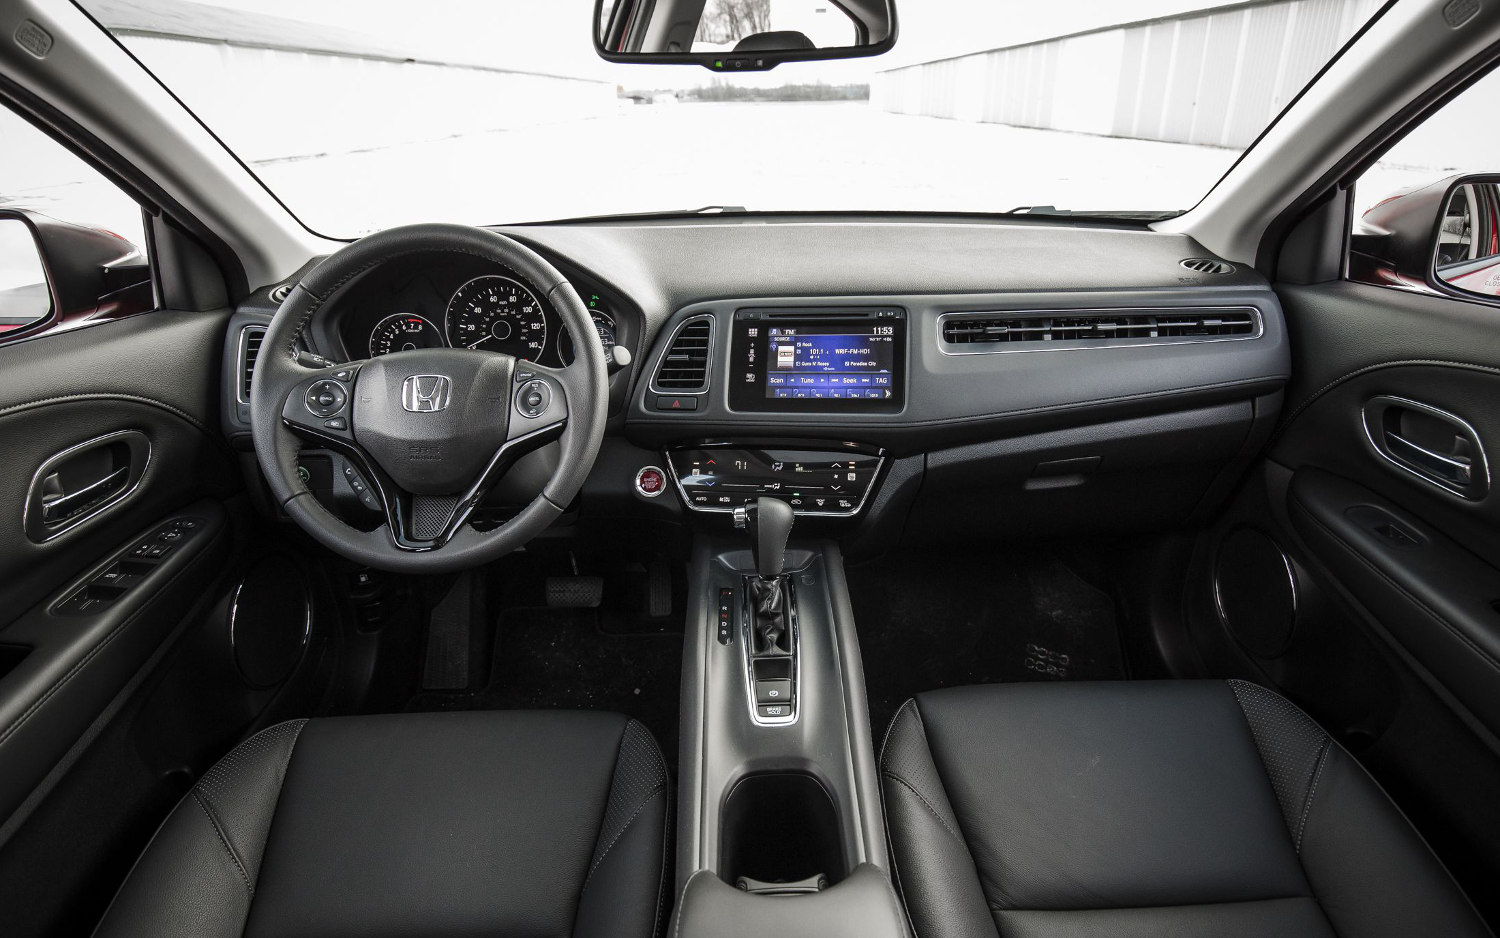 Isuzu Mu X Interior Photos For Iphone in addition Buick Envision Adds Hydra Matic Speed Automatic Transmission in addition Ford Explorer Picture as well Buick Enclave Nd Row Captains Chairs Tether Anchors also Ford Bronco Gallery. on buick suv